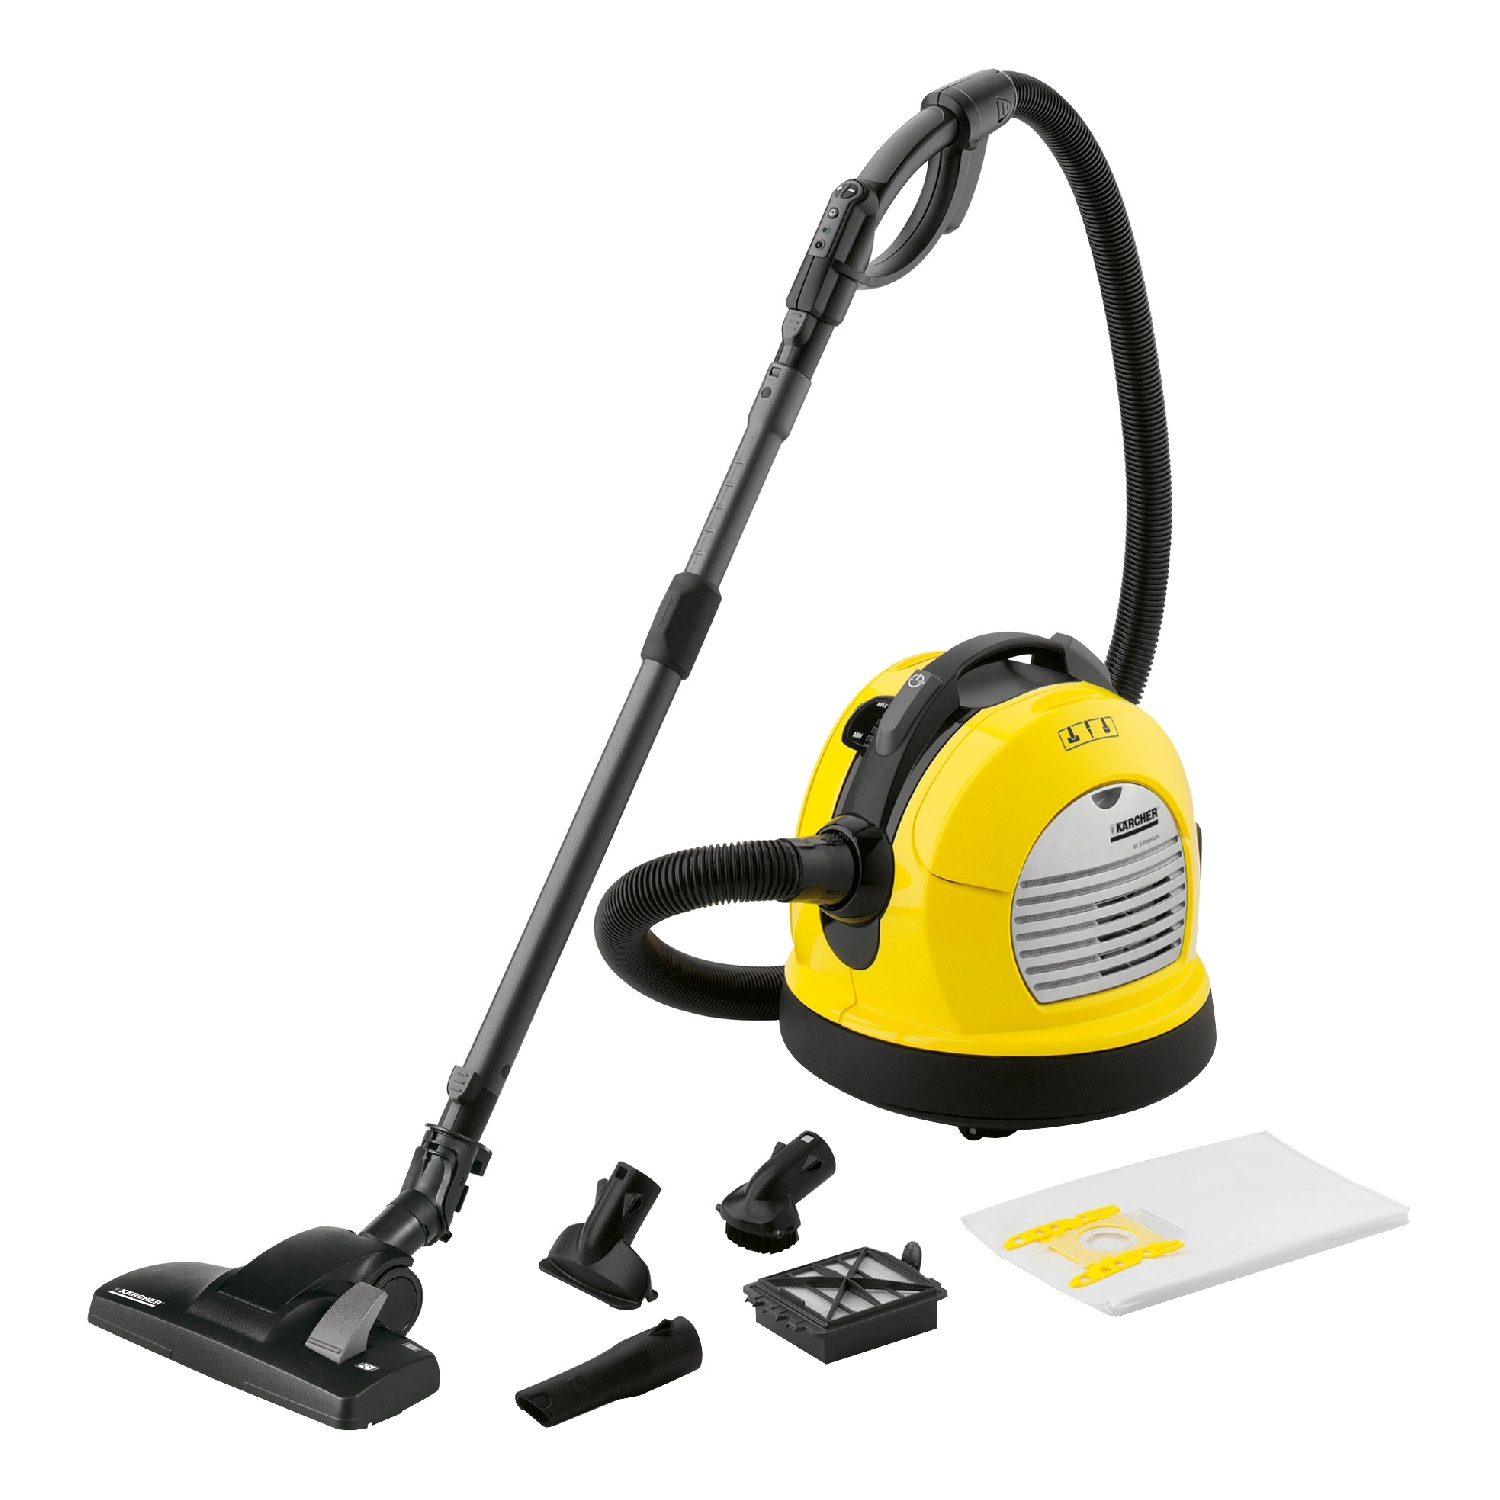 Vacuum Cleaner electric KARCHER VC 6 Premium * EU (Power 600 W, volume dust collector 4 L) цена 2017